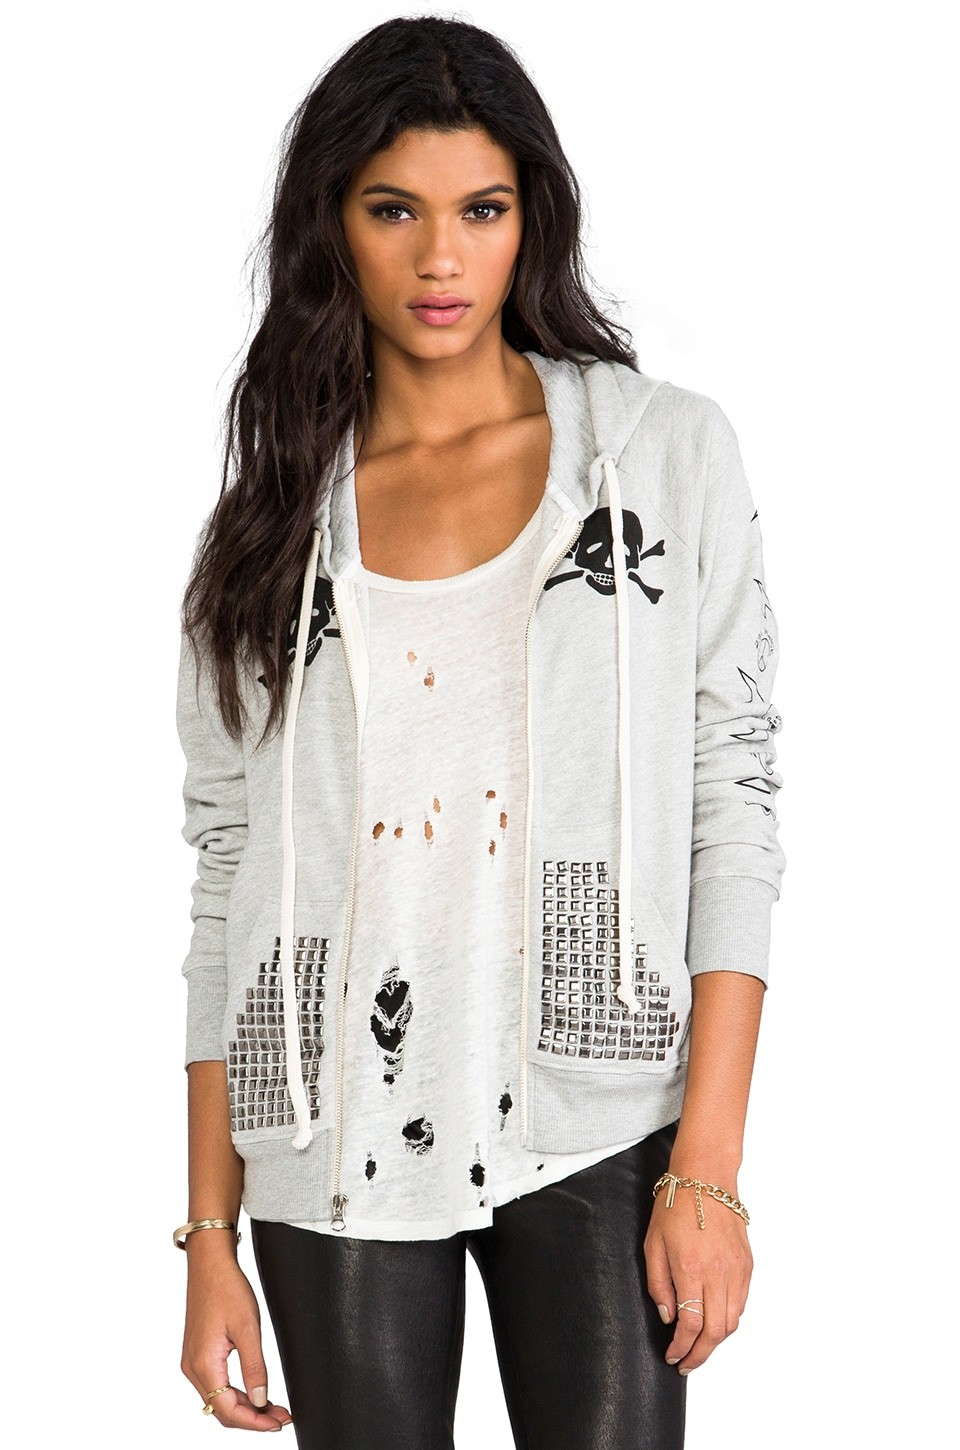 291 Skull Flag Basic Zip Hoodie in Heather Grey